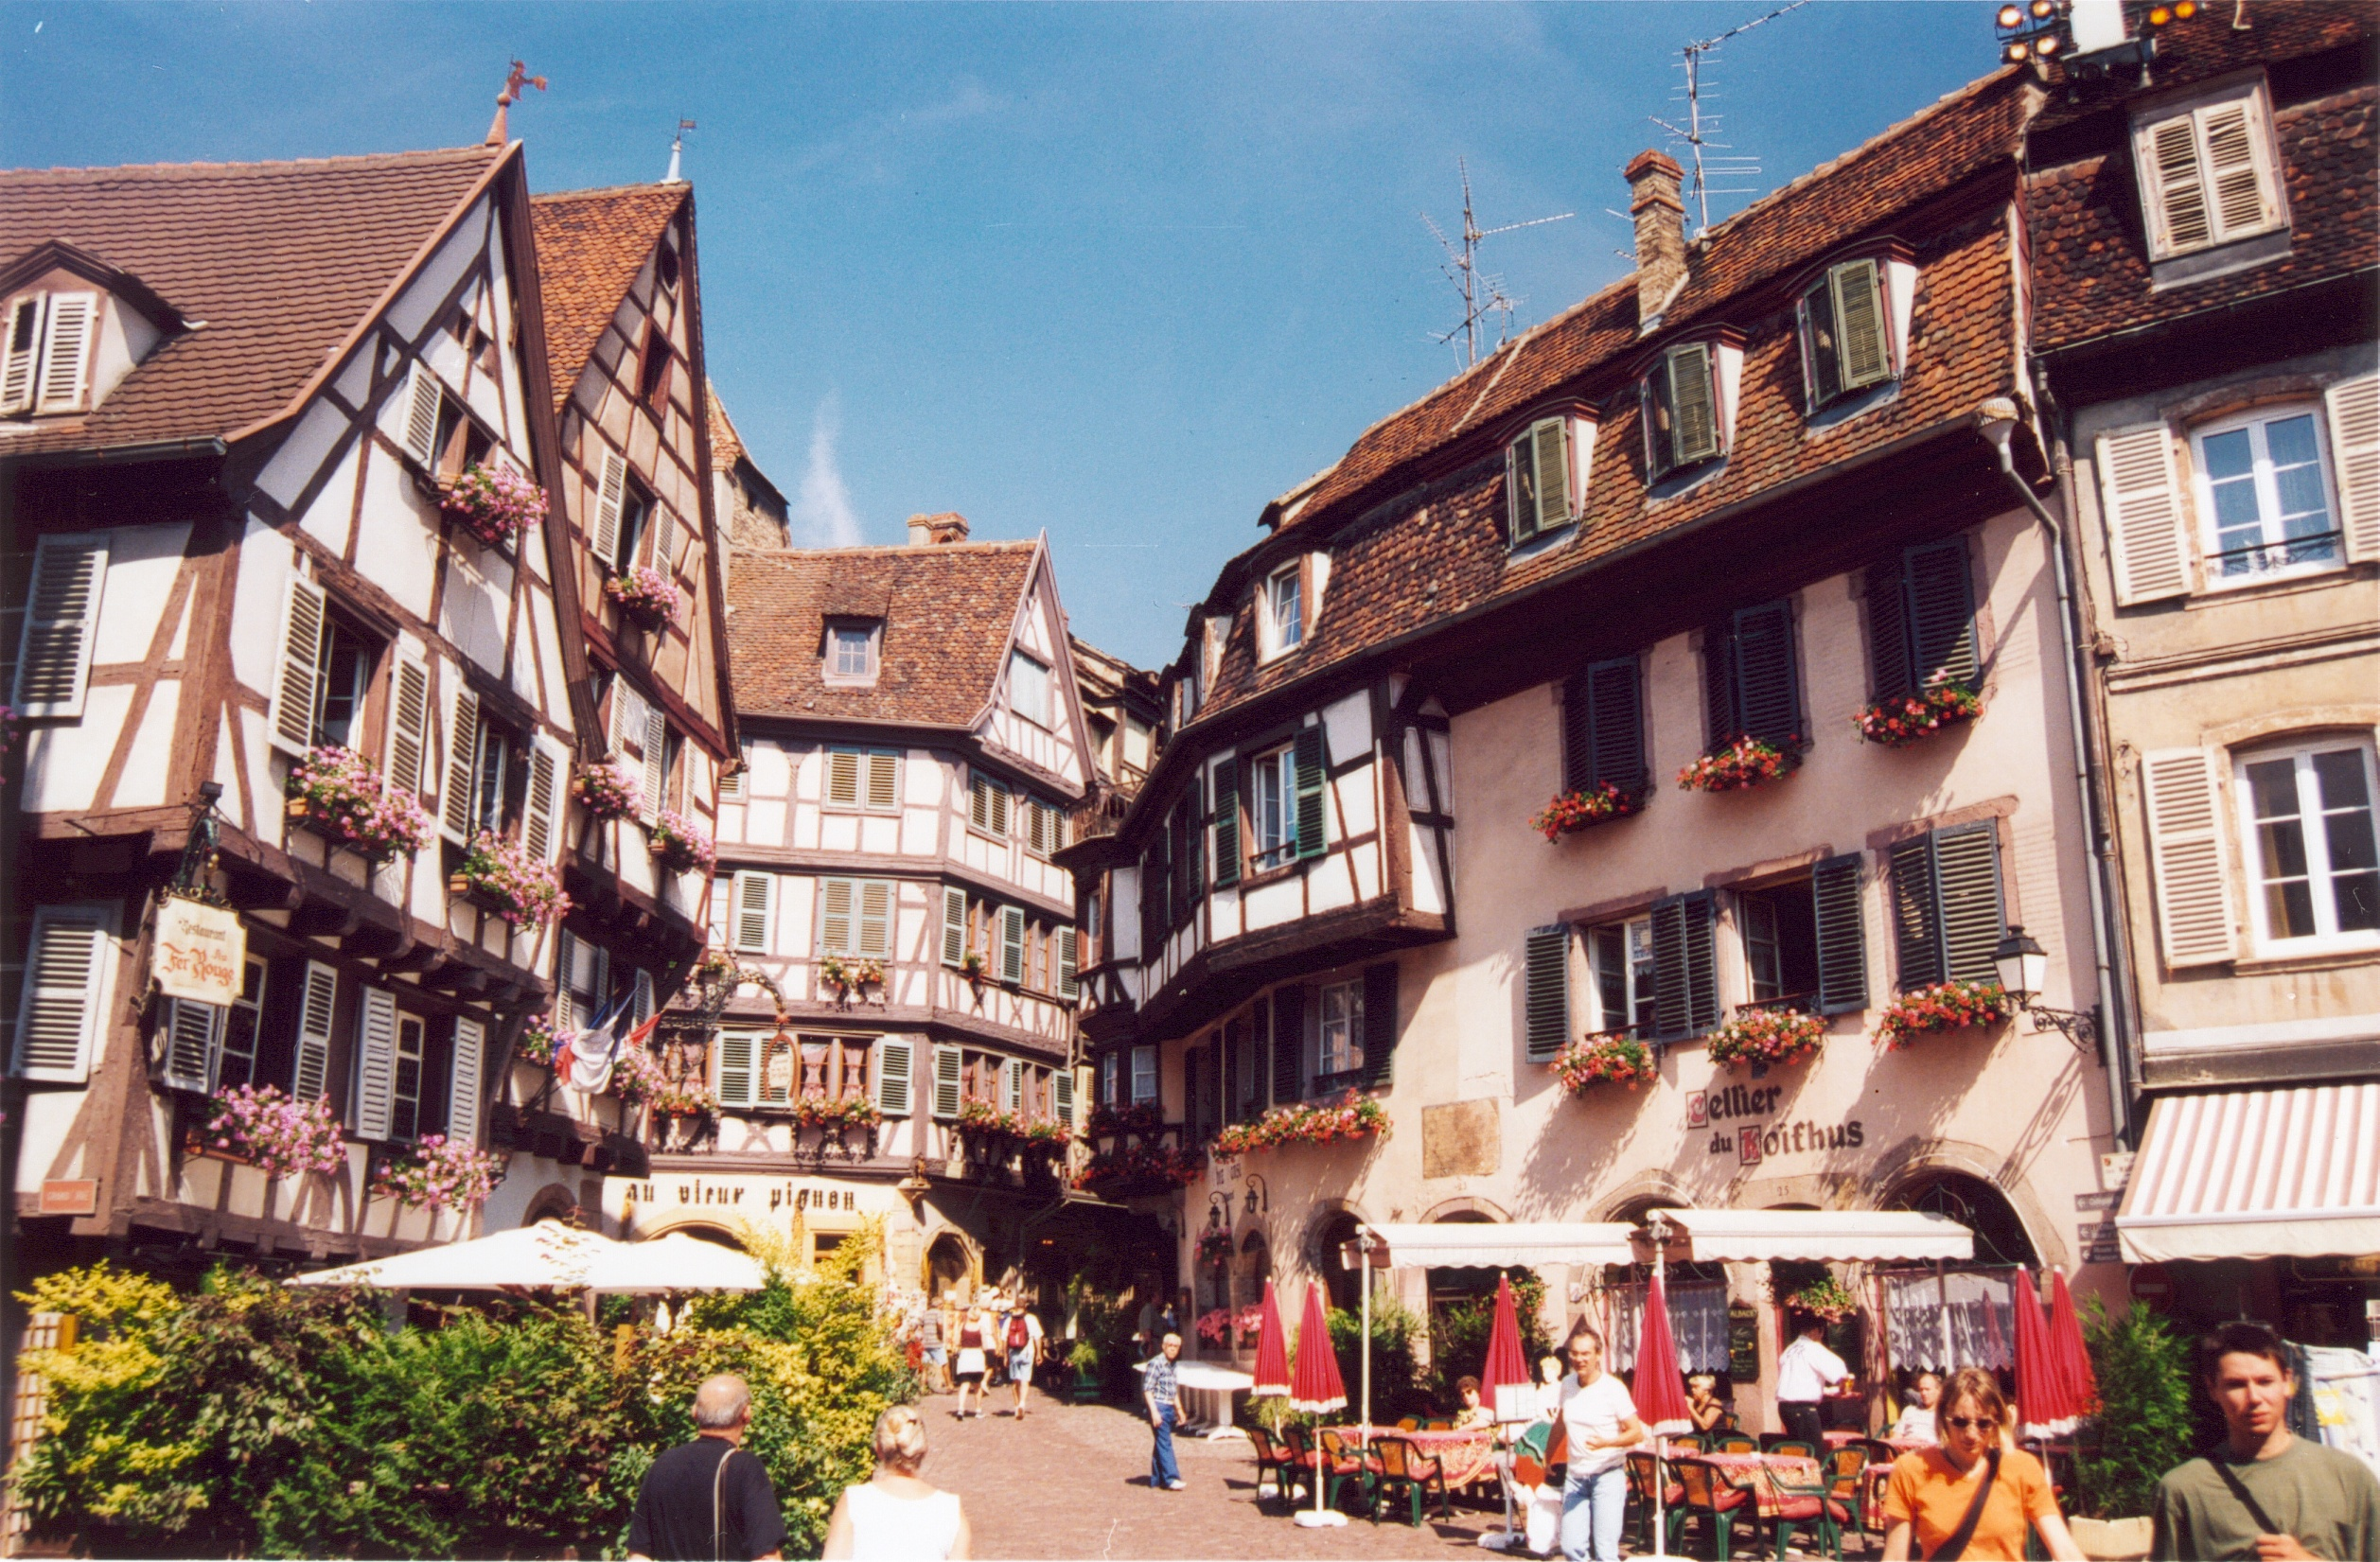 Cougar dating hot spot Colmar, France